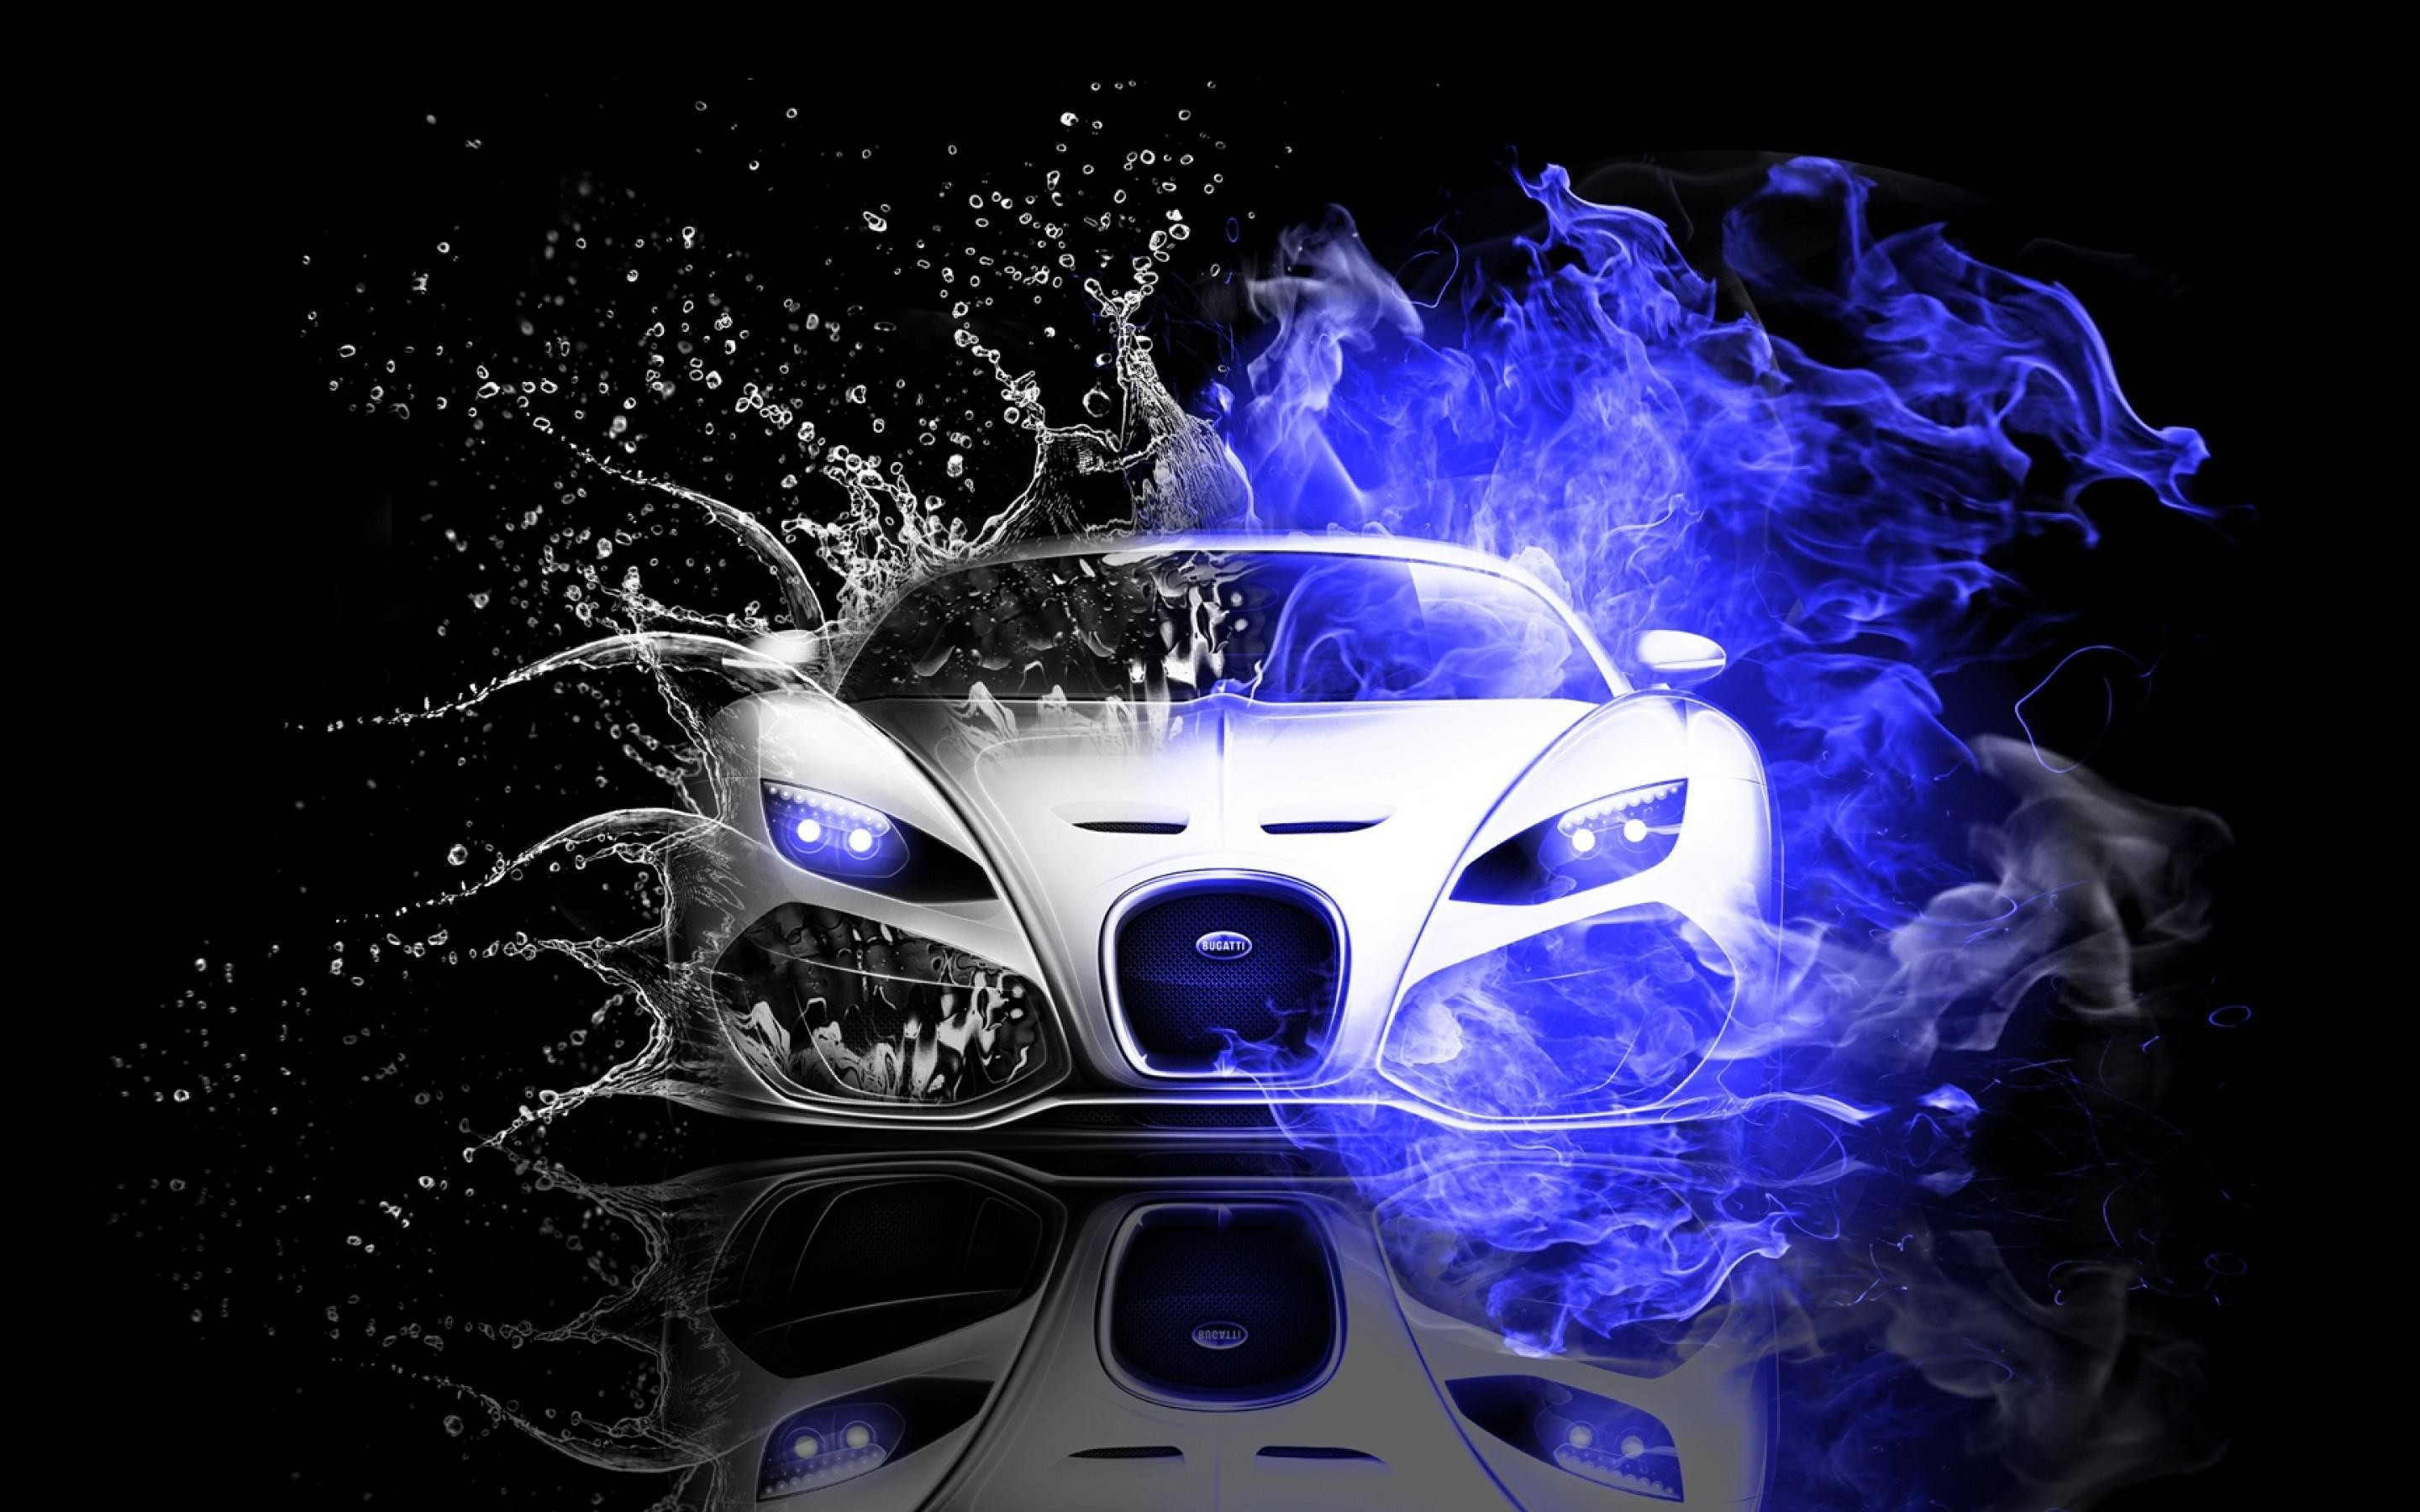 Amazing car hd wallpapers 1080p On Wallpaper HD 1366×768 with car hd wallpapers  1080p Download HD